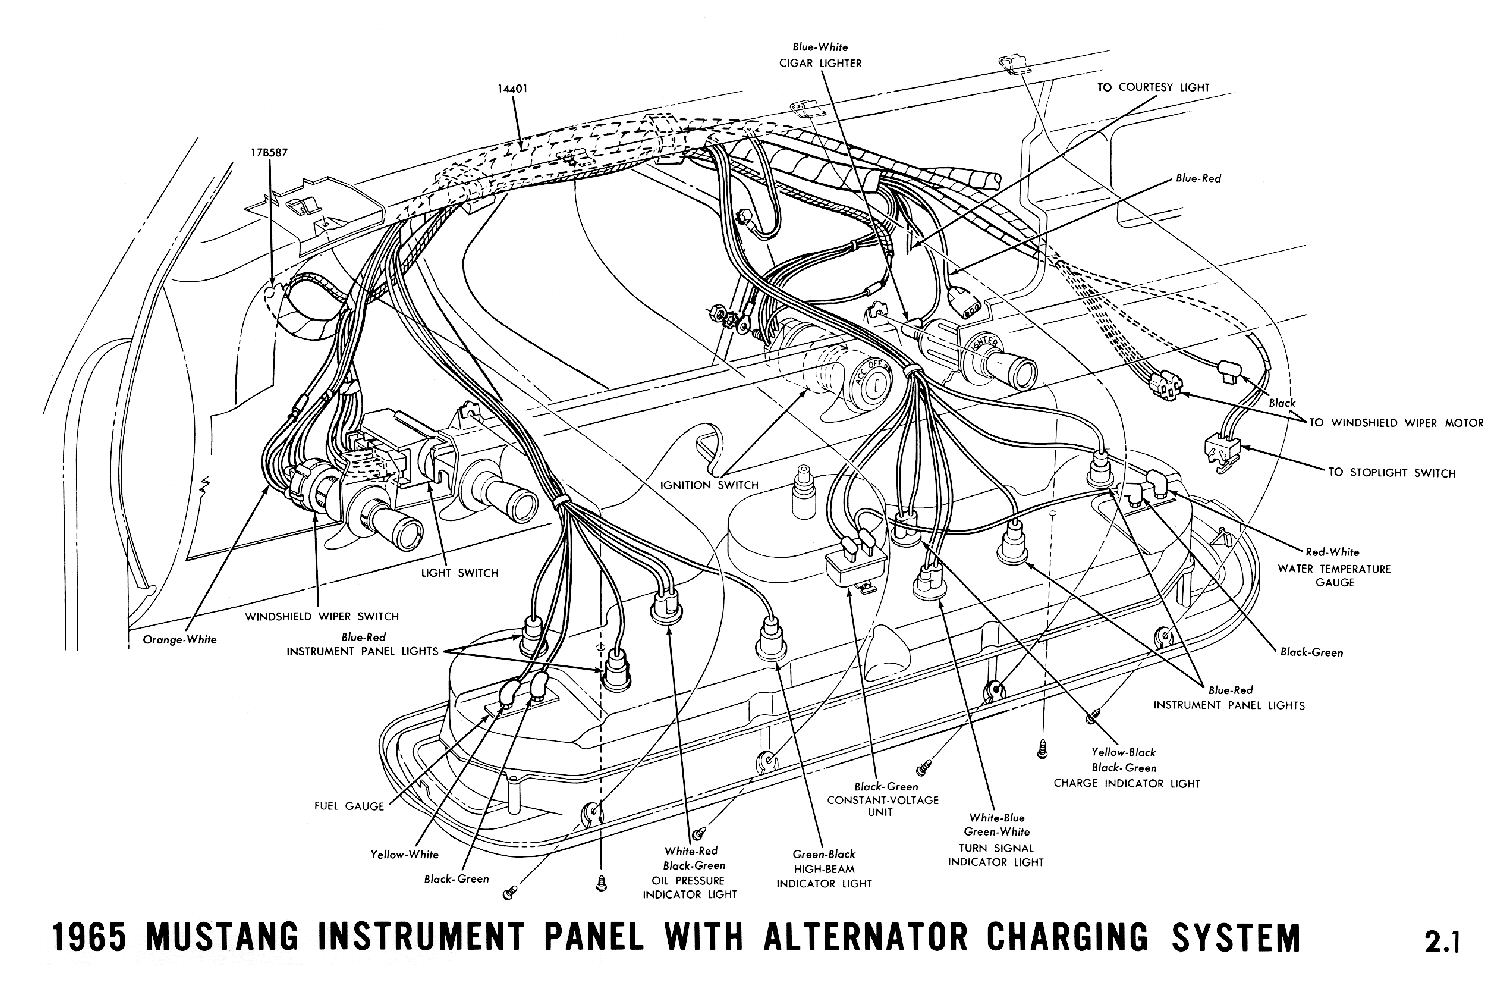 1967 mustang wiper motor wiring diagram, 1965 mustang fuel pump diagram, 1965 mustang brake line diagram, 1965 mustang starter solenoid, 1965 mustang engine diagram, mustang wiring harness diagram, 1965 mustang exhaust diagram, 1965 mustang assembly diagram, 1965 mustang 289 hipo engine, 1965 mustang outline, 1965 mustang blueprints, 1965 mustang door diagram, 1964 mustang wiring diagram, 1965 mustang burnt amber, 1966 mustang alternator diagram, 1965 mustang fuse box diagram, 1965 mustang voltage regulator diagram, ford mustang wiring diagram, 1965 mustang tachometer diagram, 1966 mustang wiring diagram, on 1965 mustang alternator wiring diagram